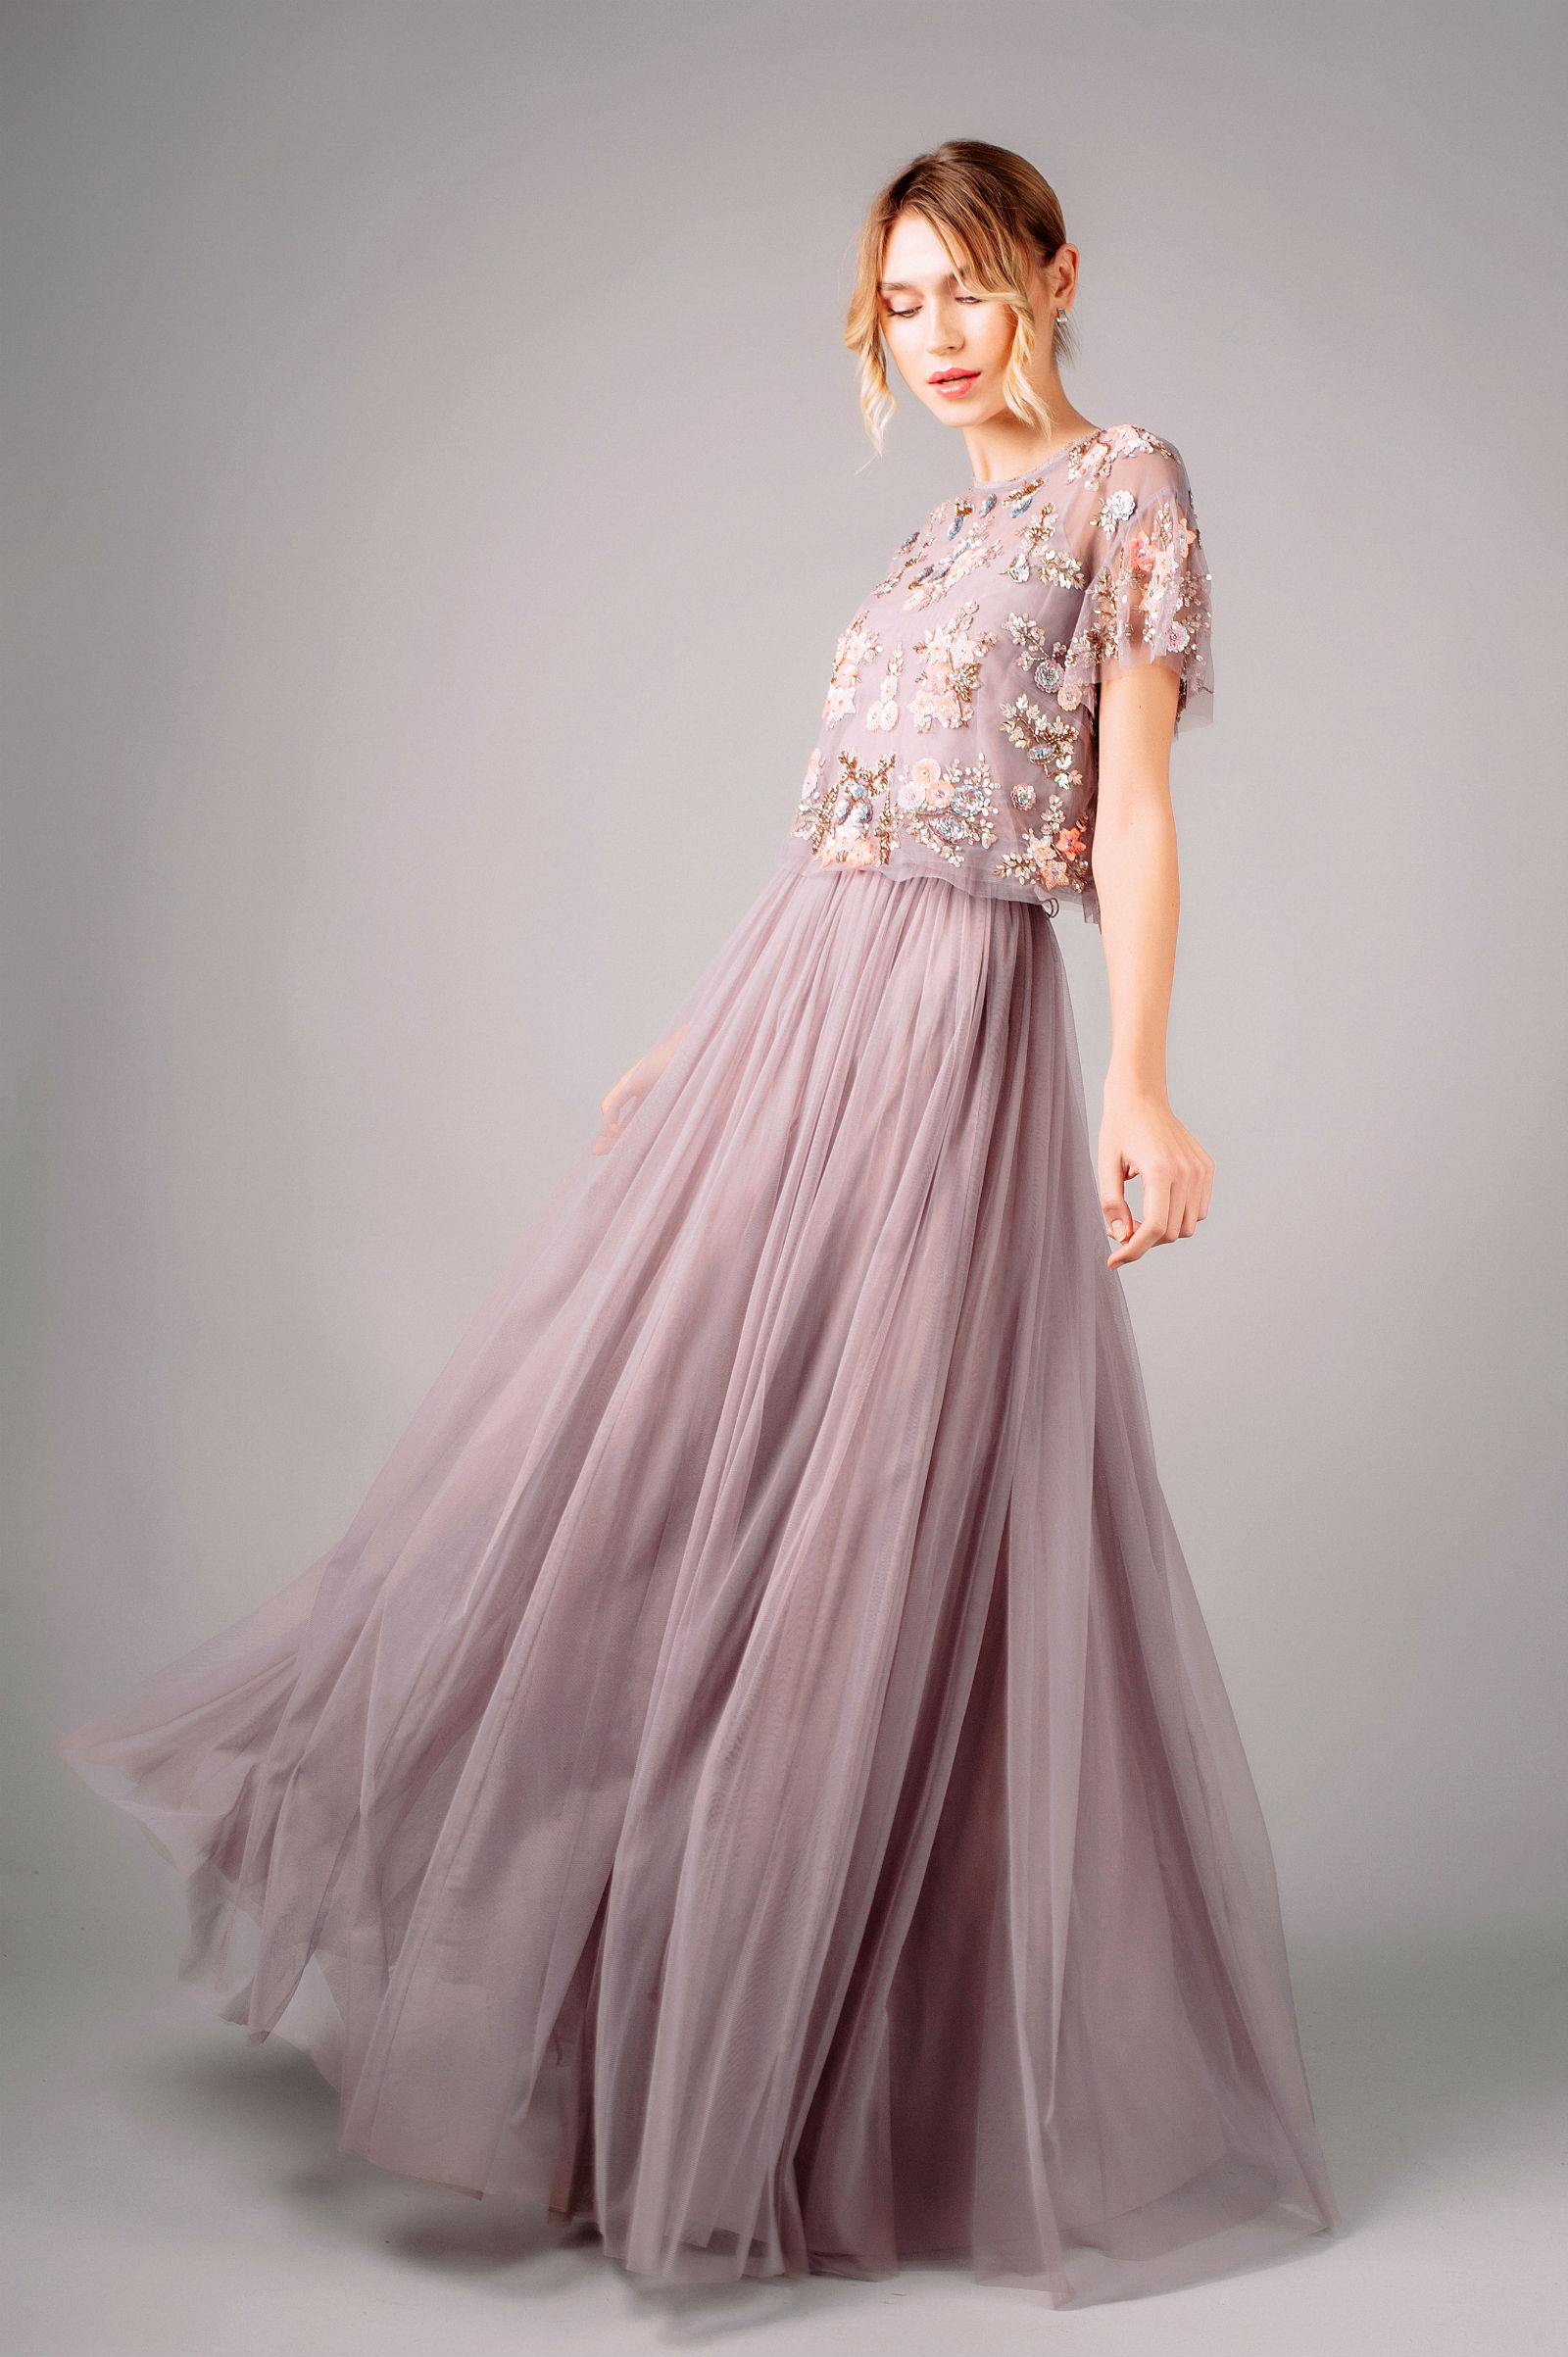 Needle and Thread Tulle Skirt and Embellished Top rörelse